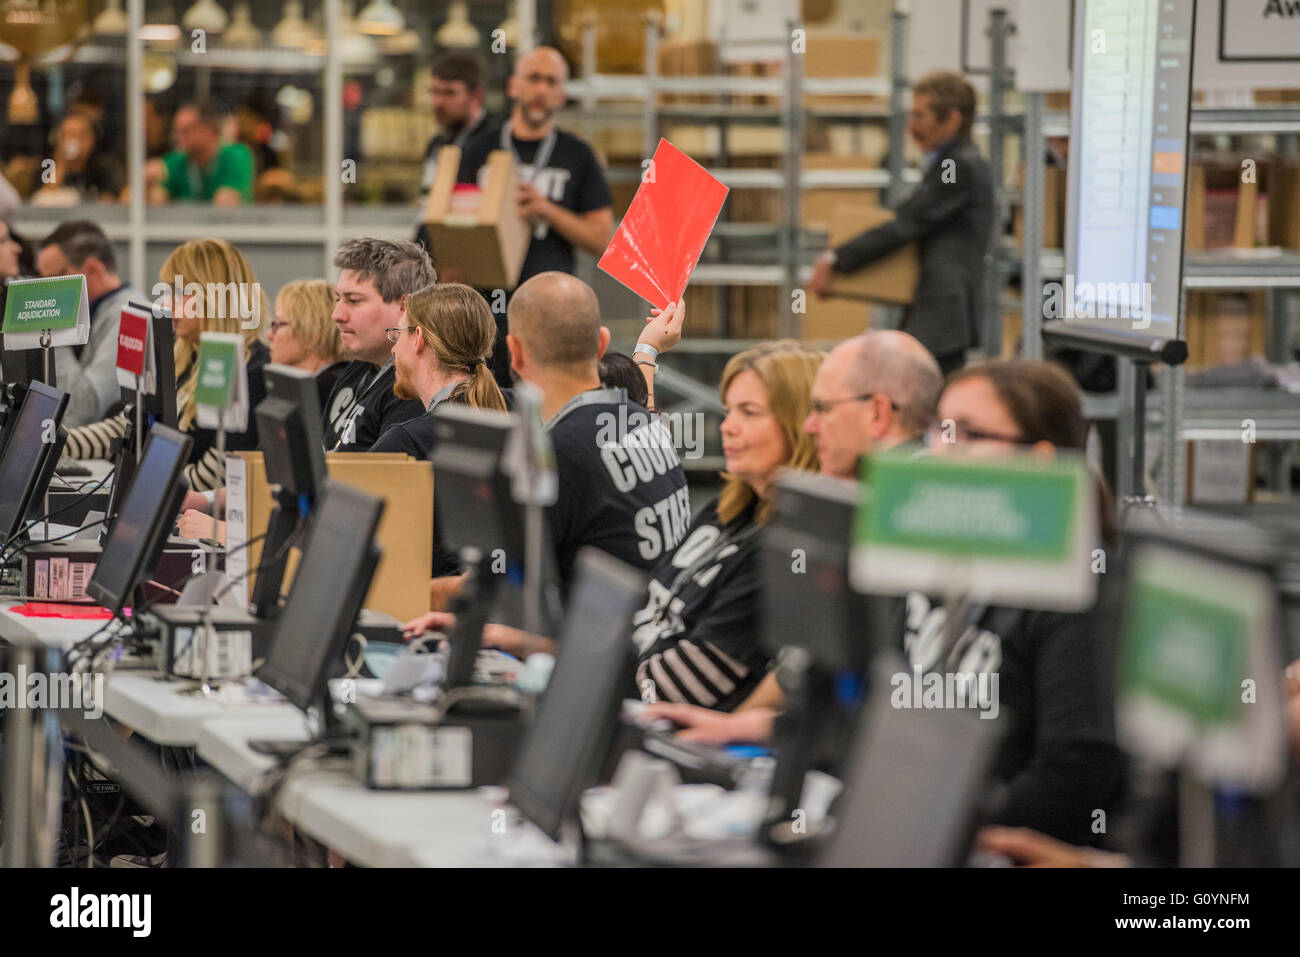 London, UK. 6th May, 2016. A red card is held up to ask for assistance in the adjudication area - The counts for - Stock Image